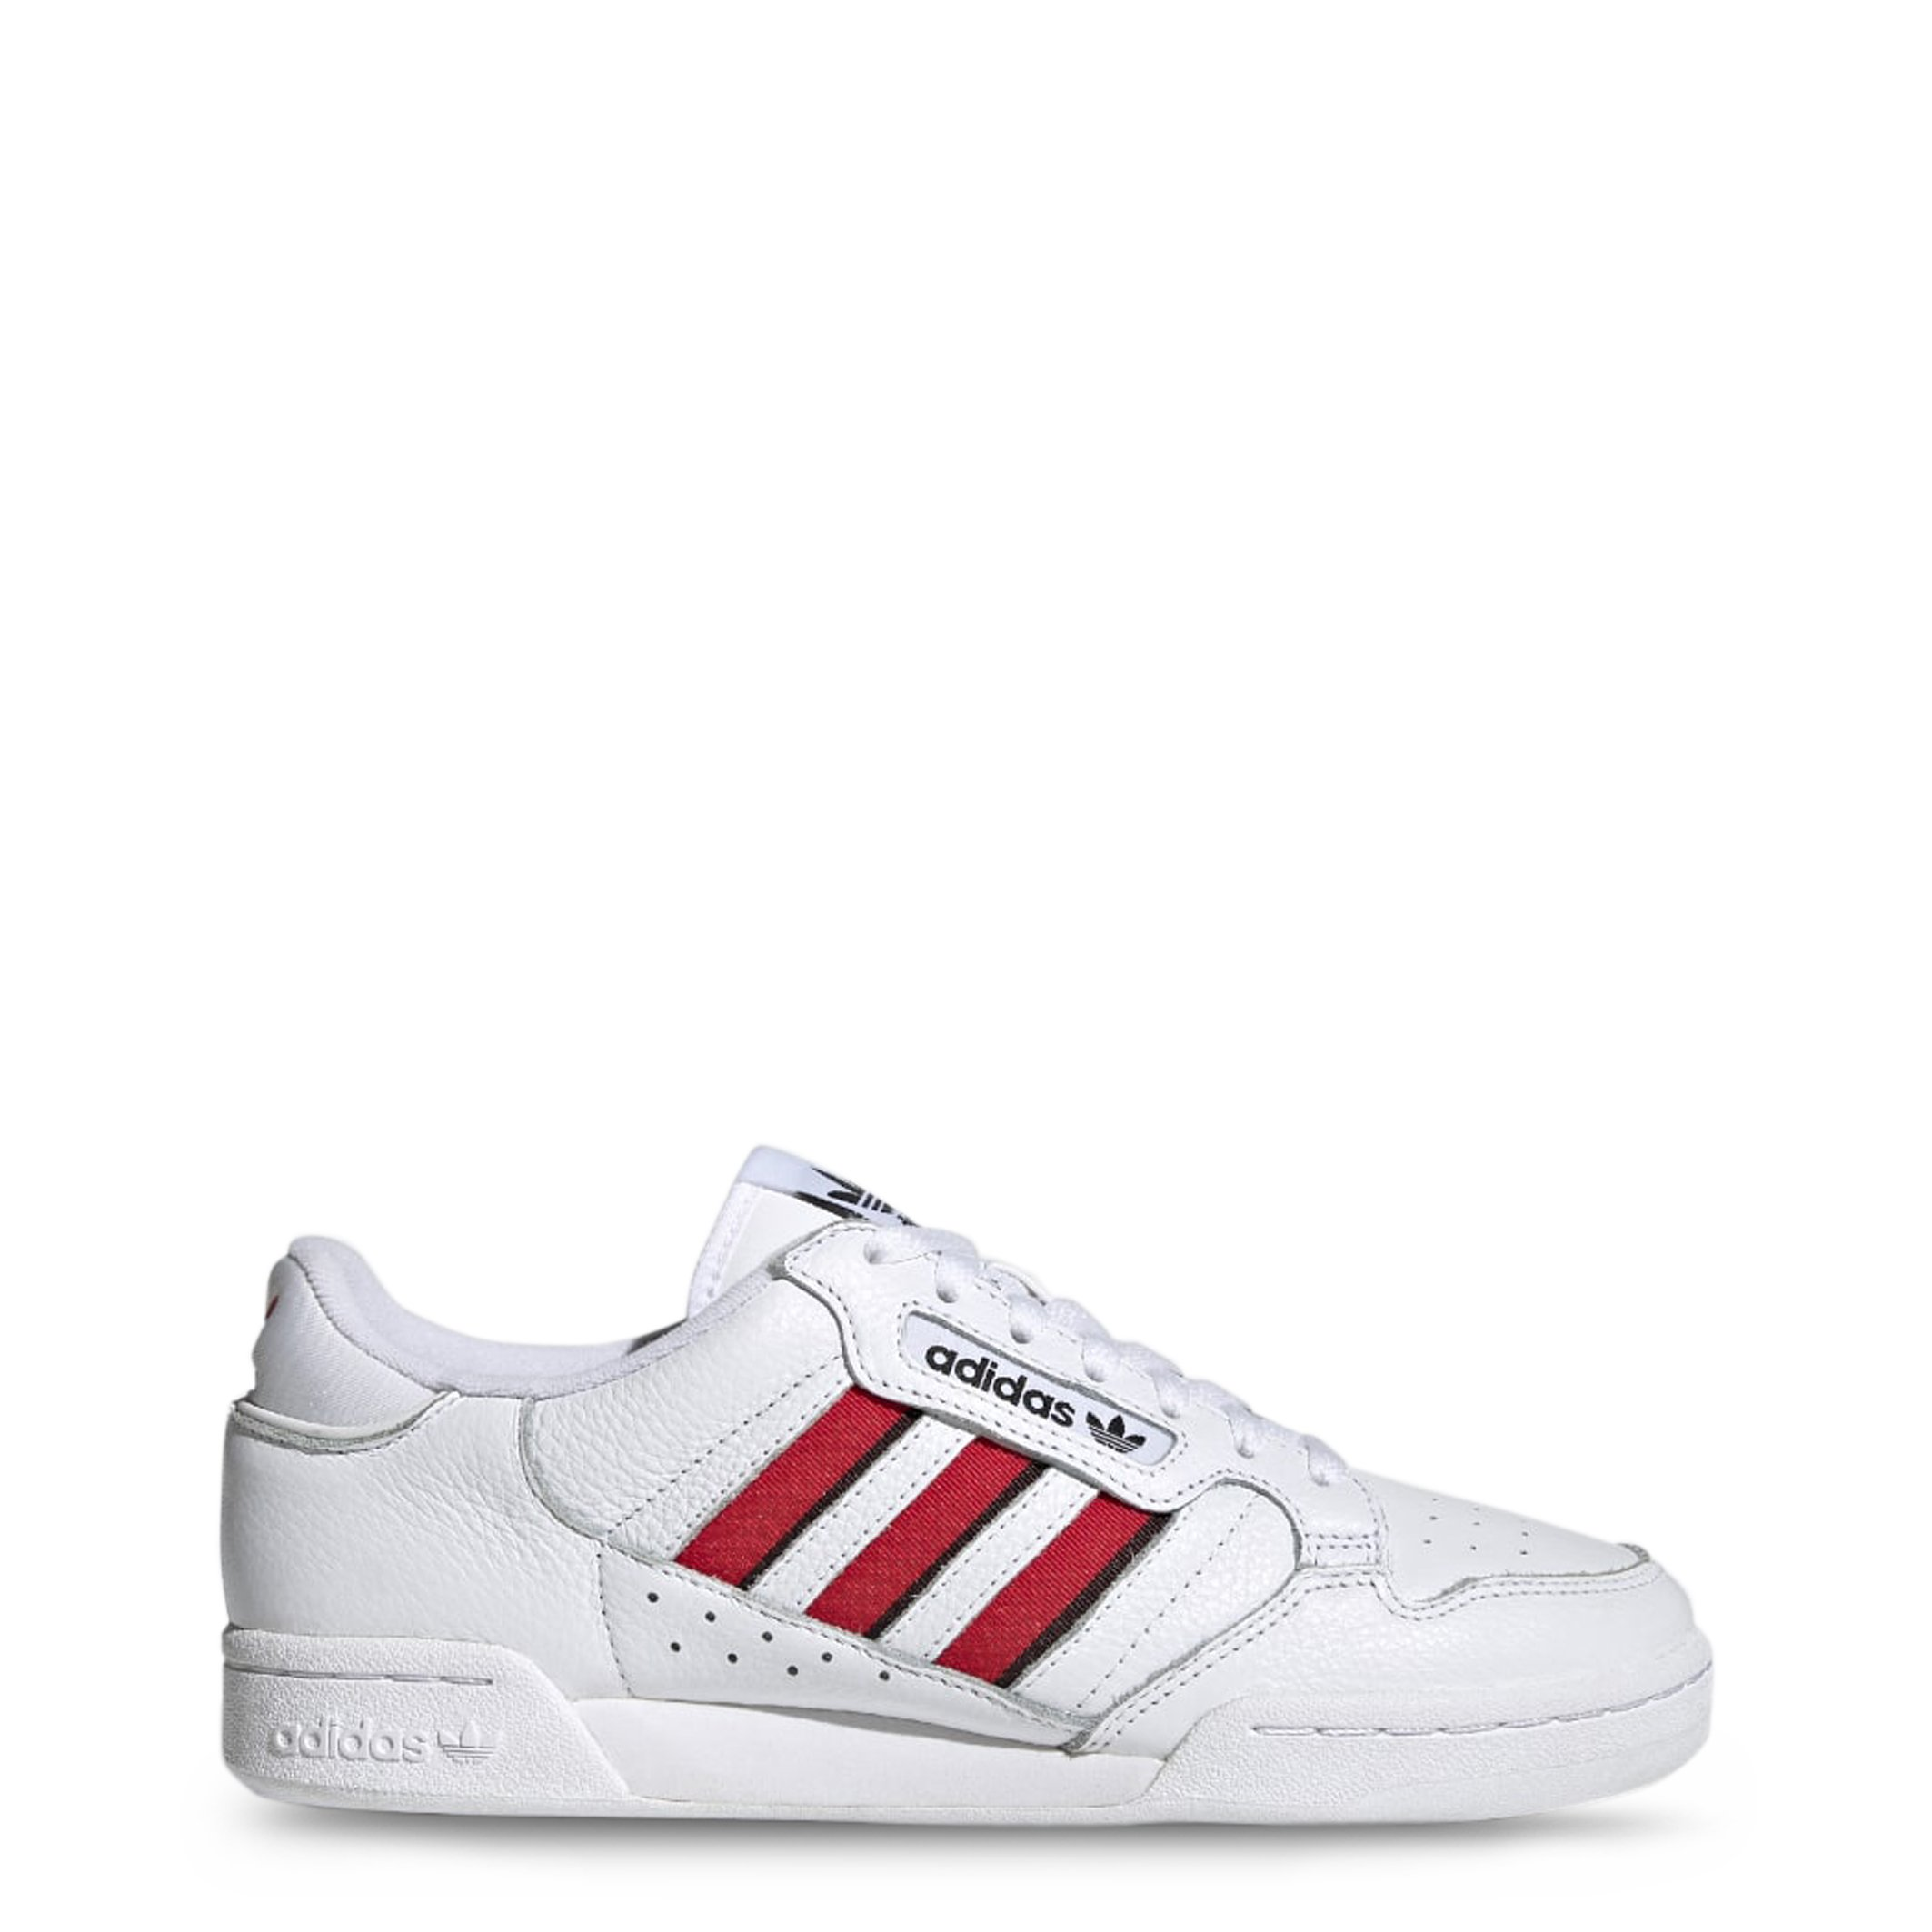 Adidas Women's Continental 80 Sneakers Shoes White 349748 - white-1 UK 8.5